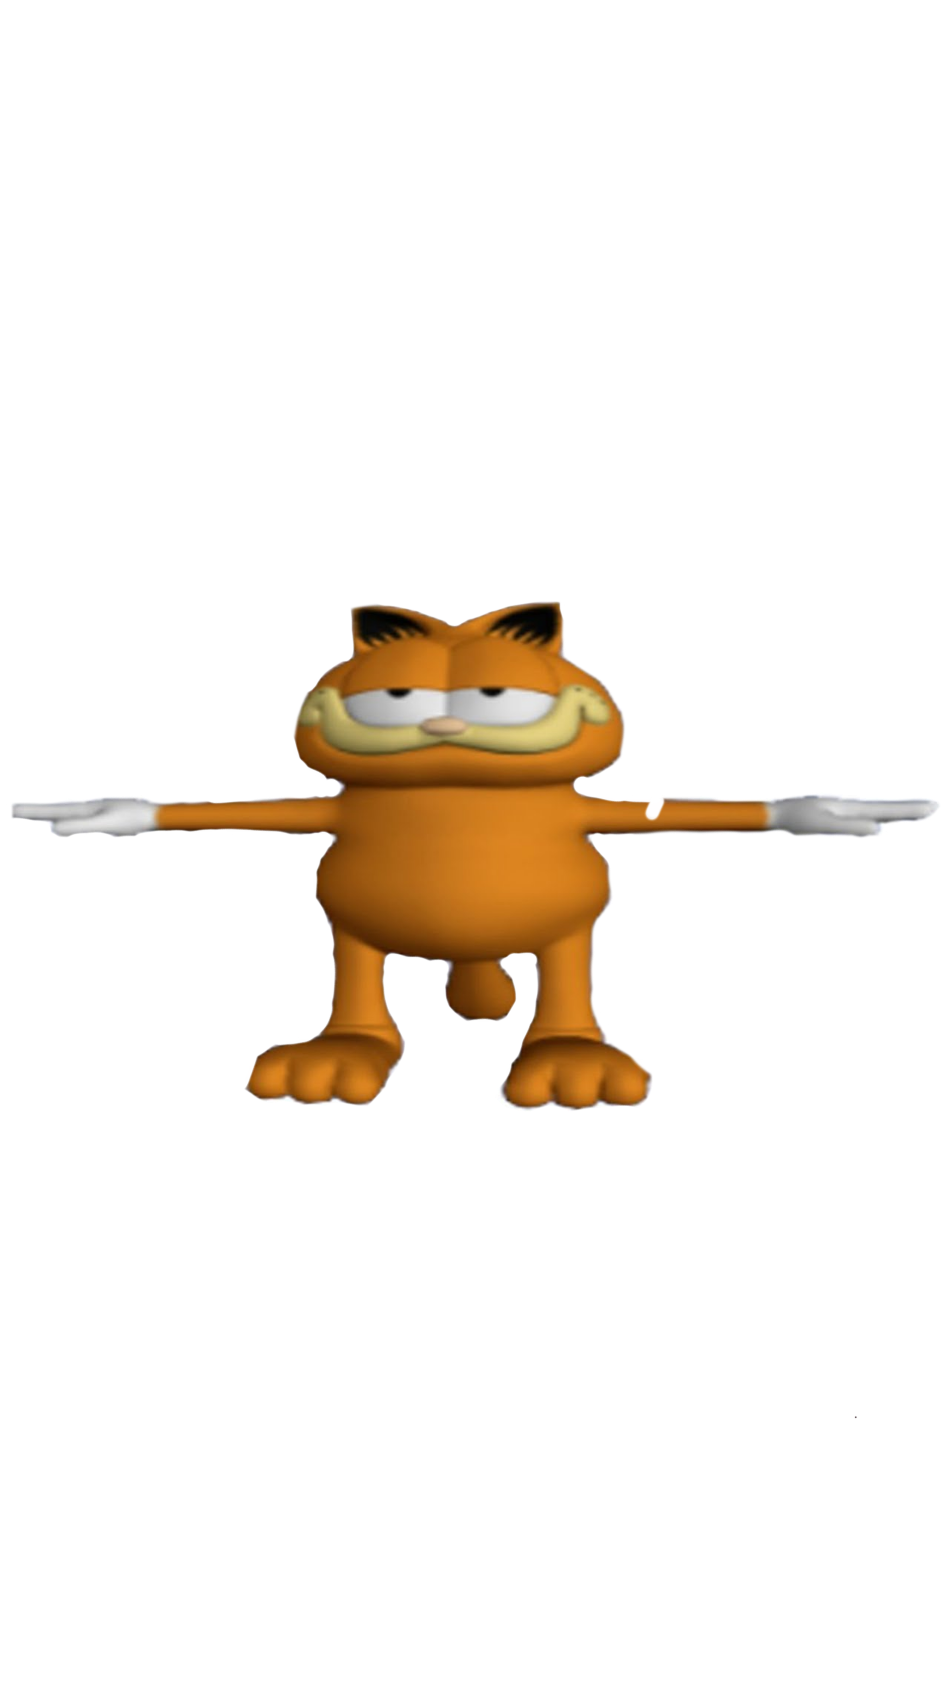 Transparent Png Of T Posing Garfield By Meatmantires On Deviantart